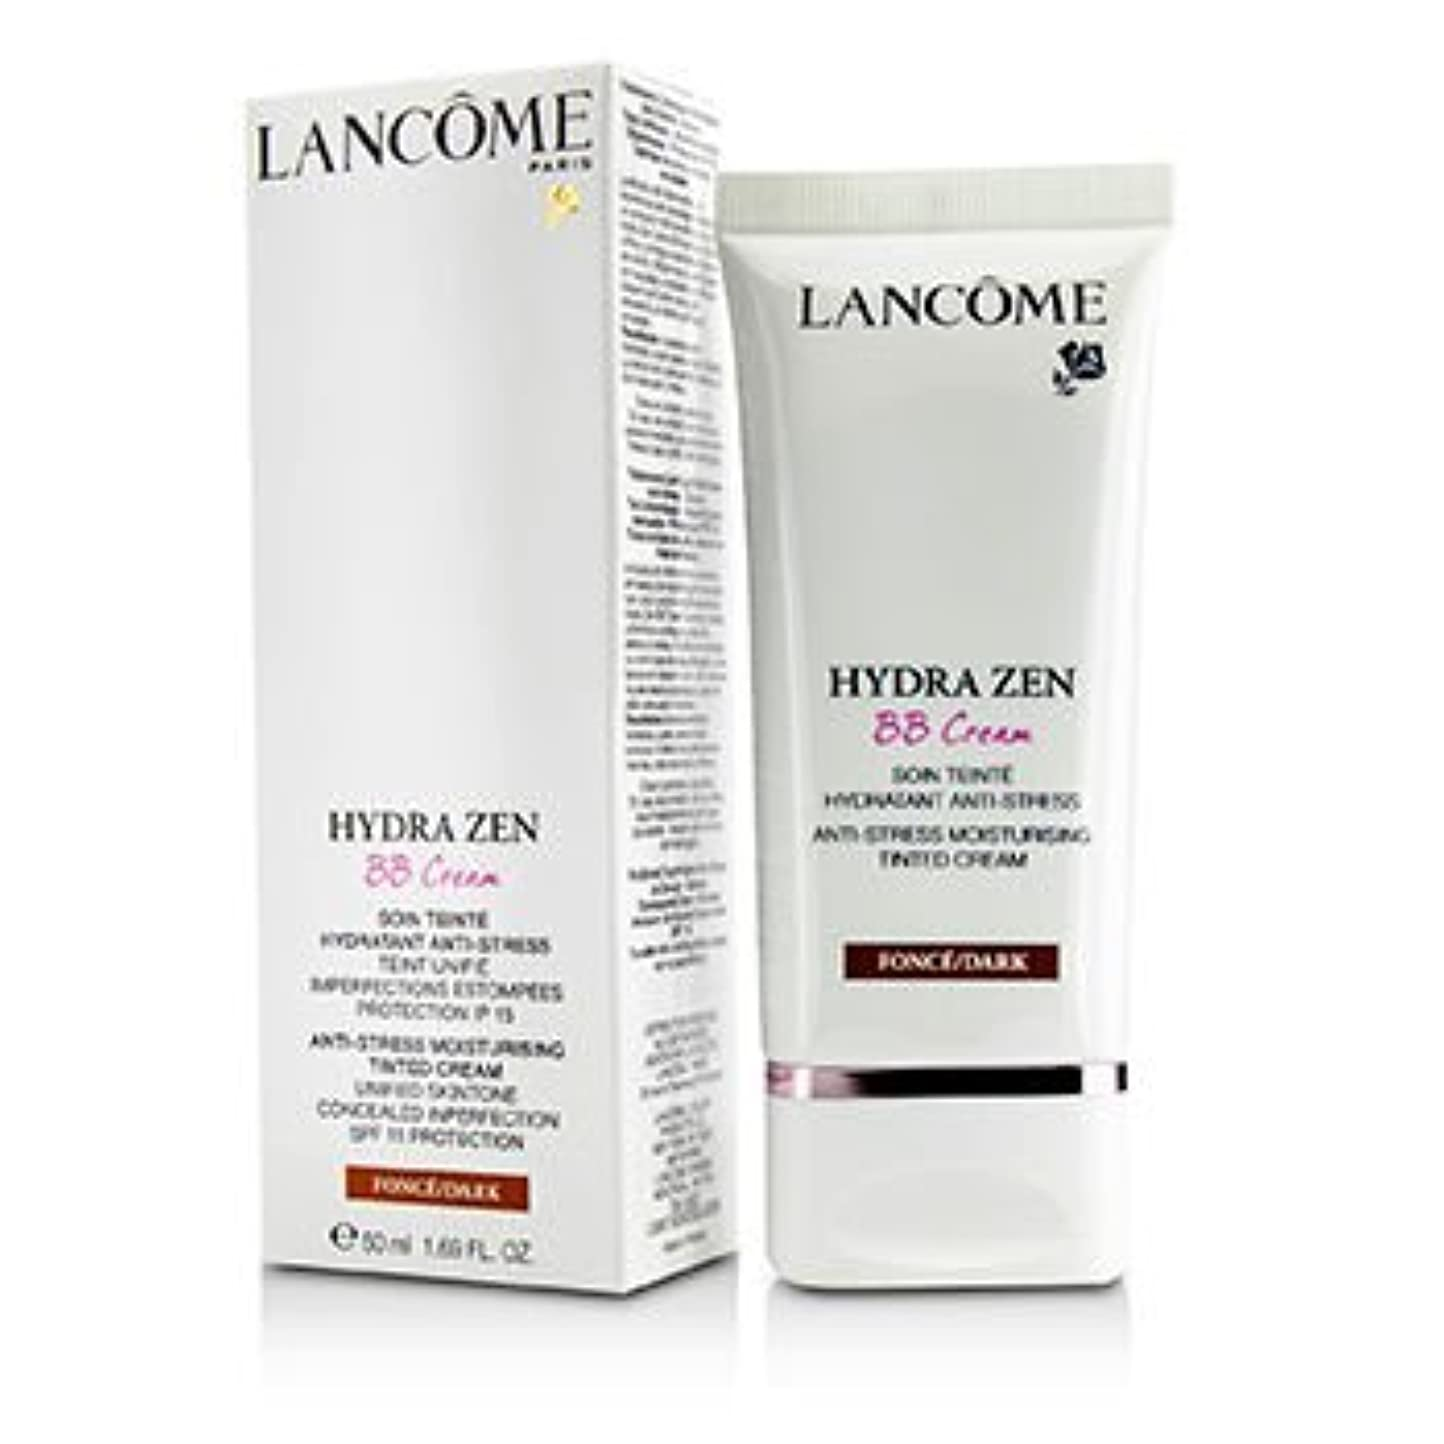 マニアックメンテナンス契約した[Lancome] Lancome Hydra Zen (BB Cream) Anti-Stress Moisturising Tinted Cream SPF 15 - # Dark 50ml/1.69oz